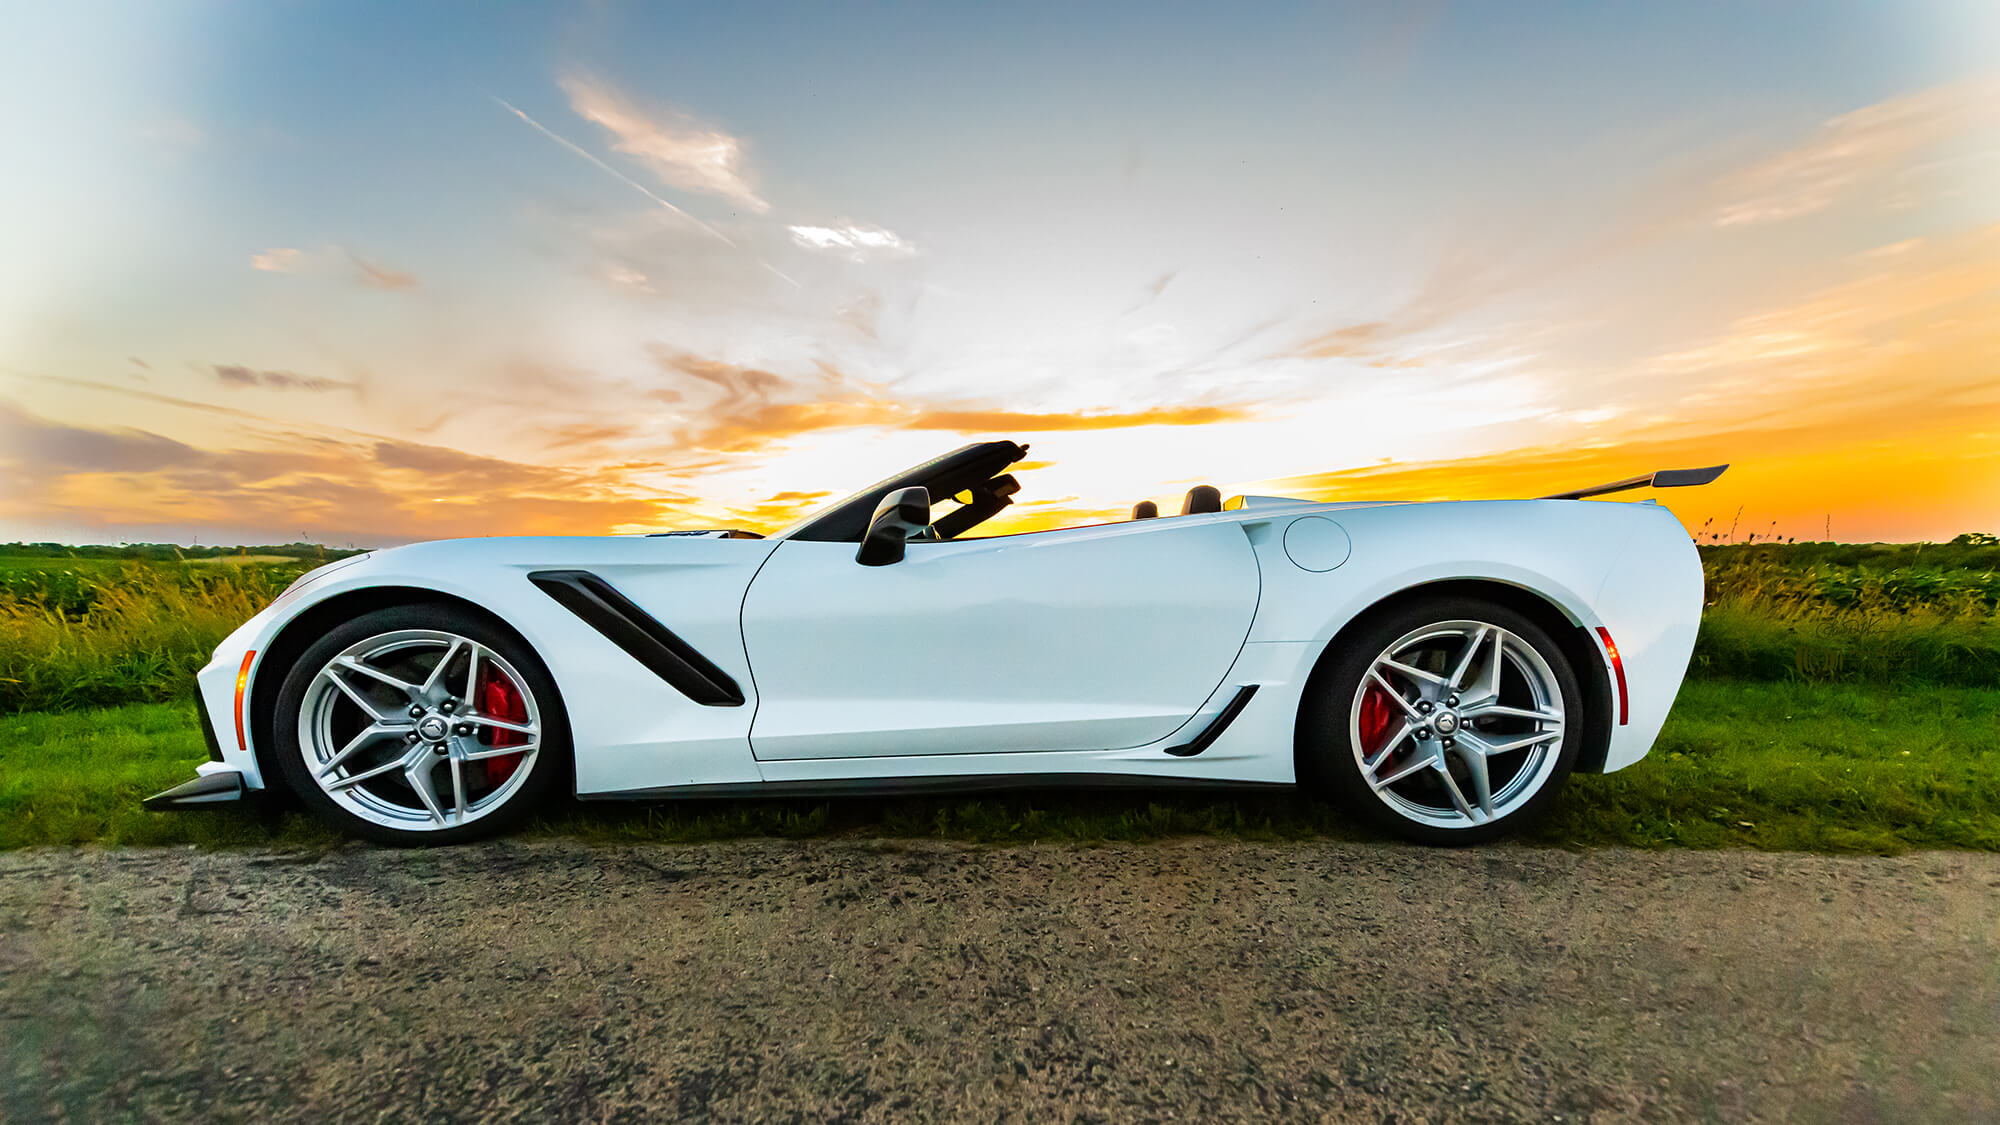 Corvette ZR1 Driftless Sunset